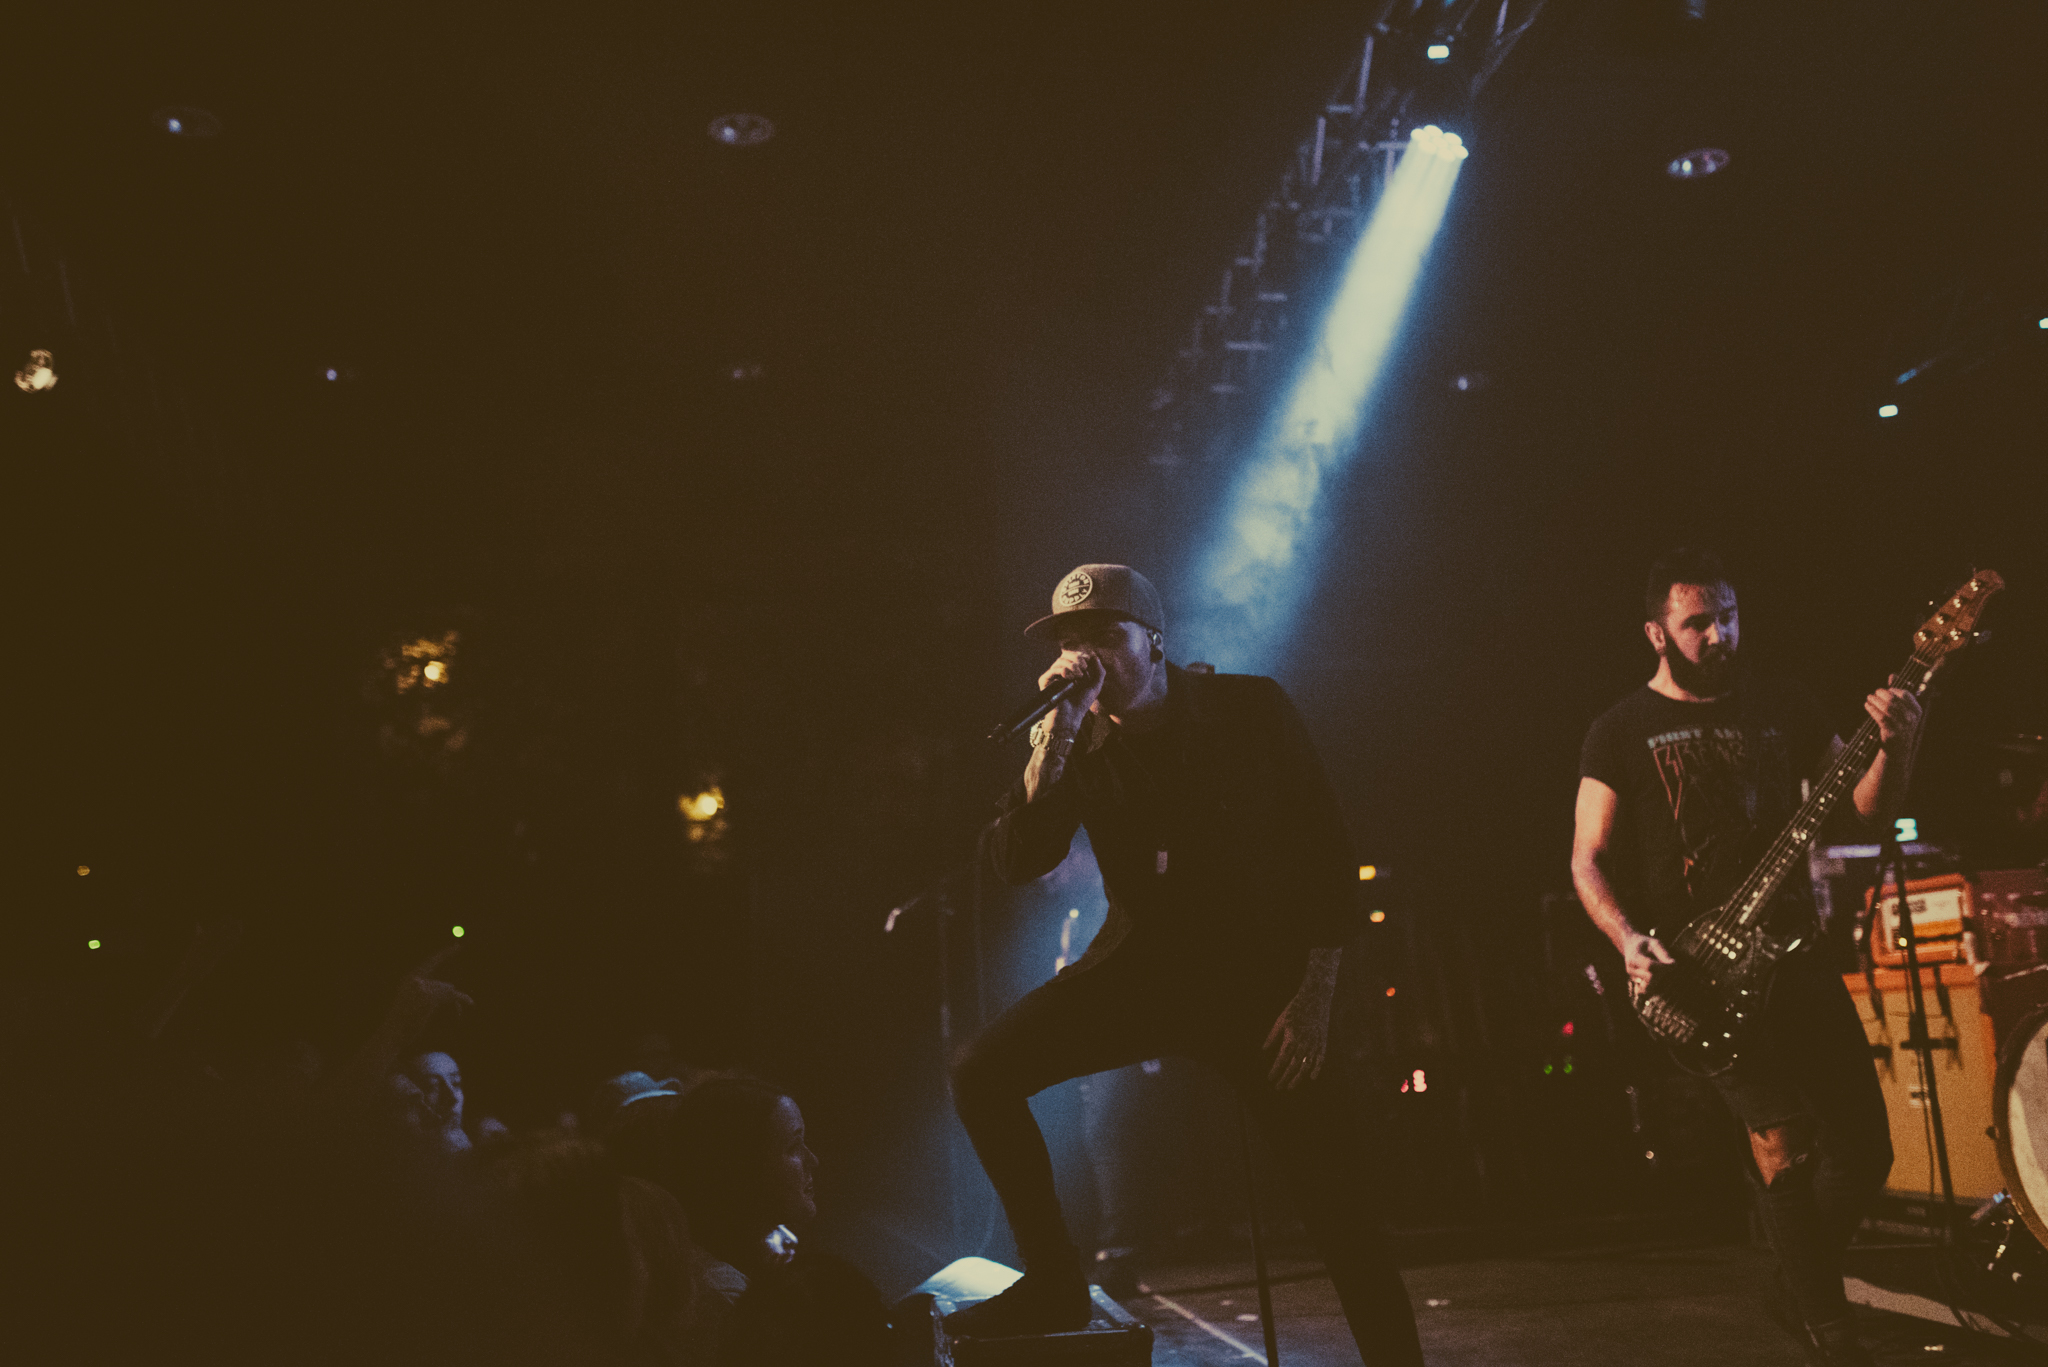 20161117-memphis may fire-8048.jpg